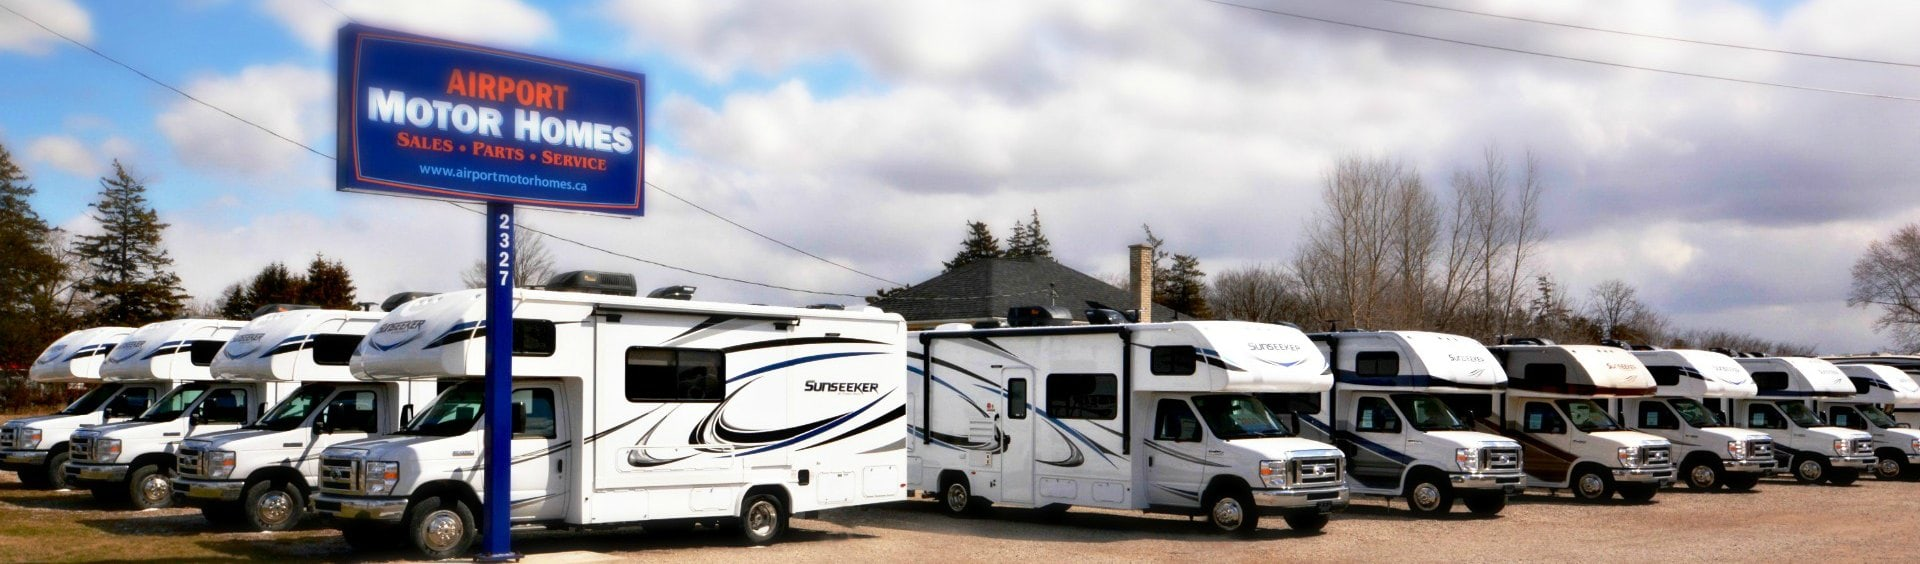 rv services, sunseeker warranty service, sunseeker service ontario